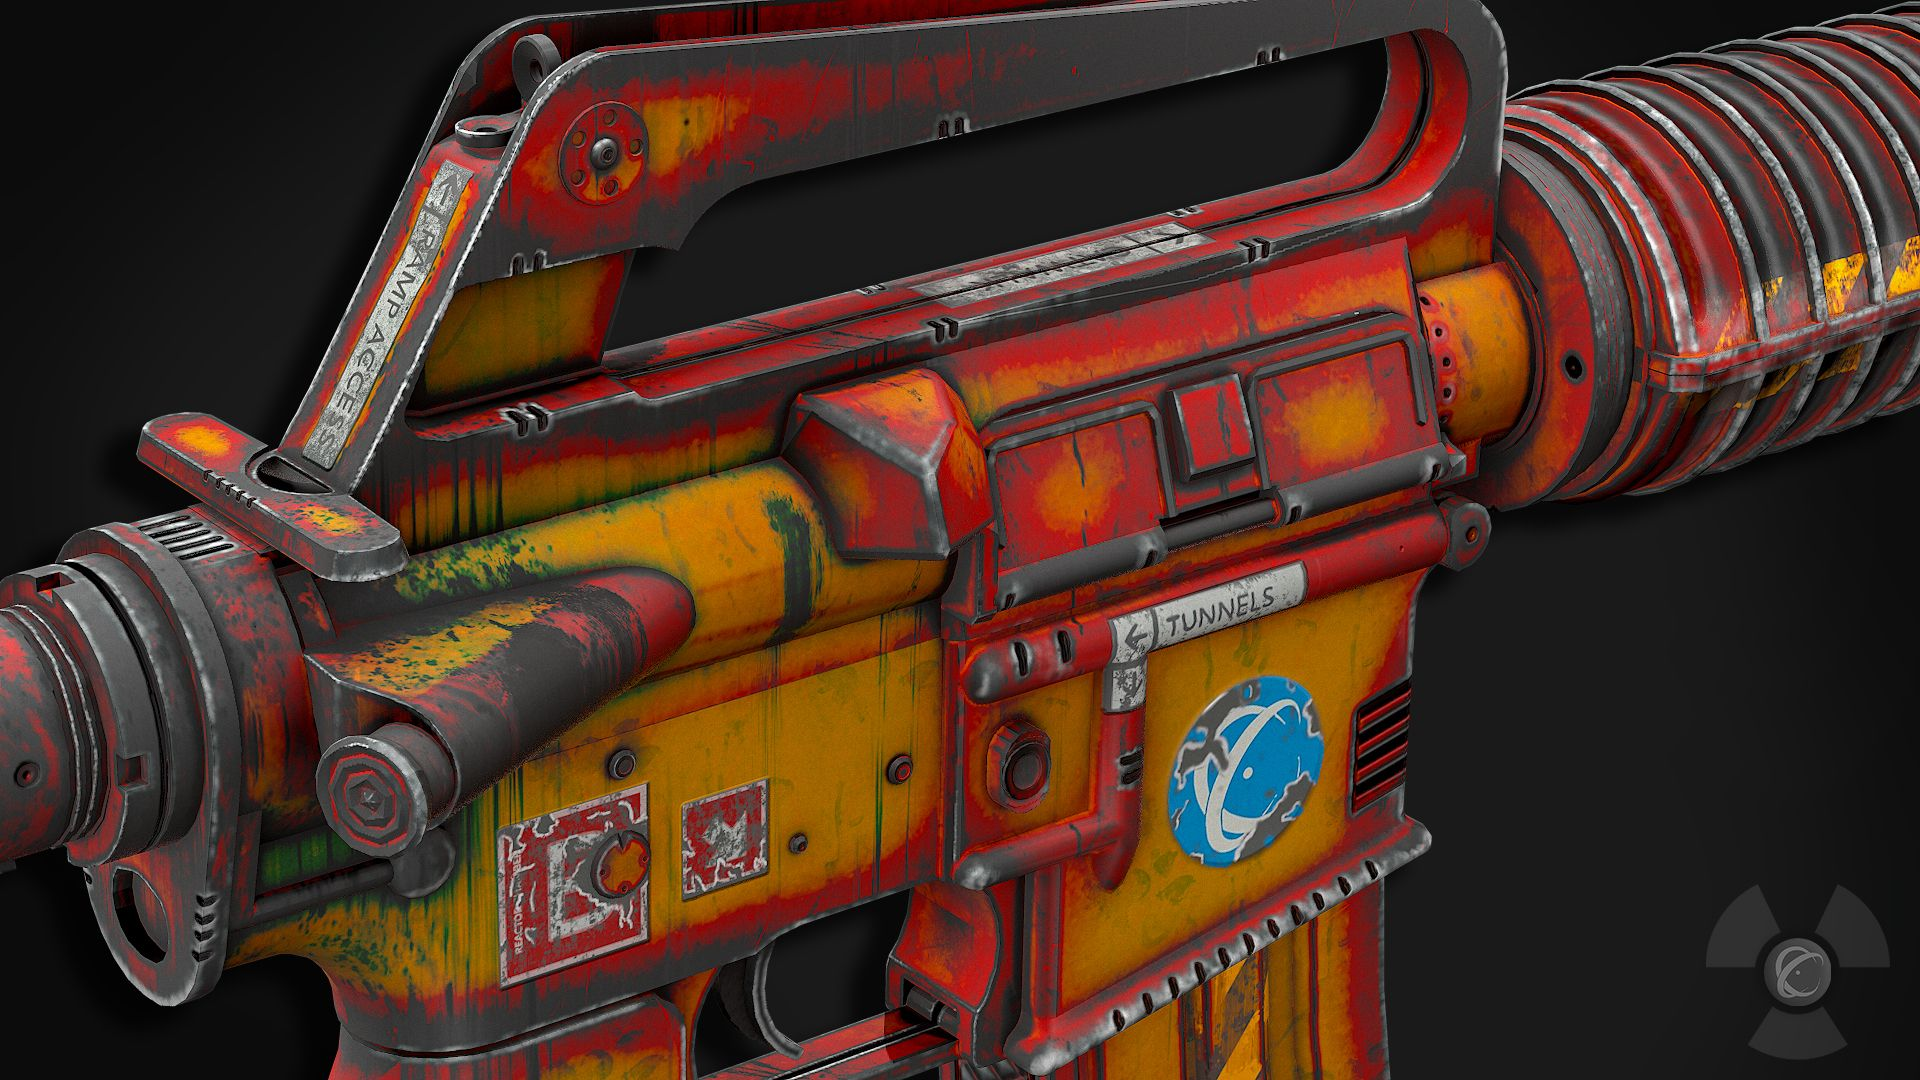 CS:GO fan makes Nuke lore-inspired 'Tales of Cedar Creek' weapon skin line